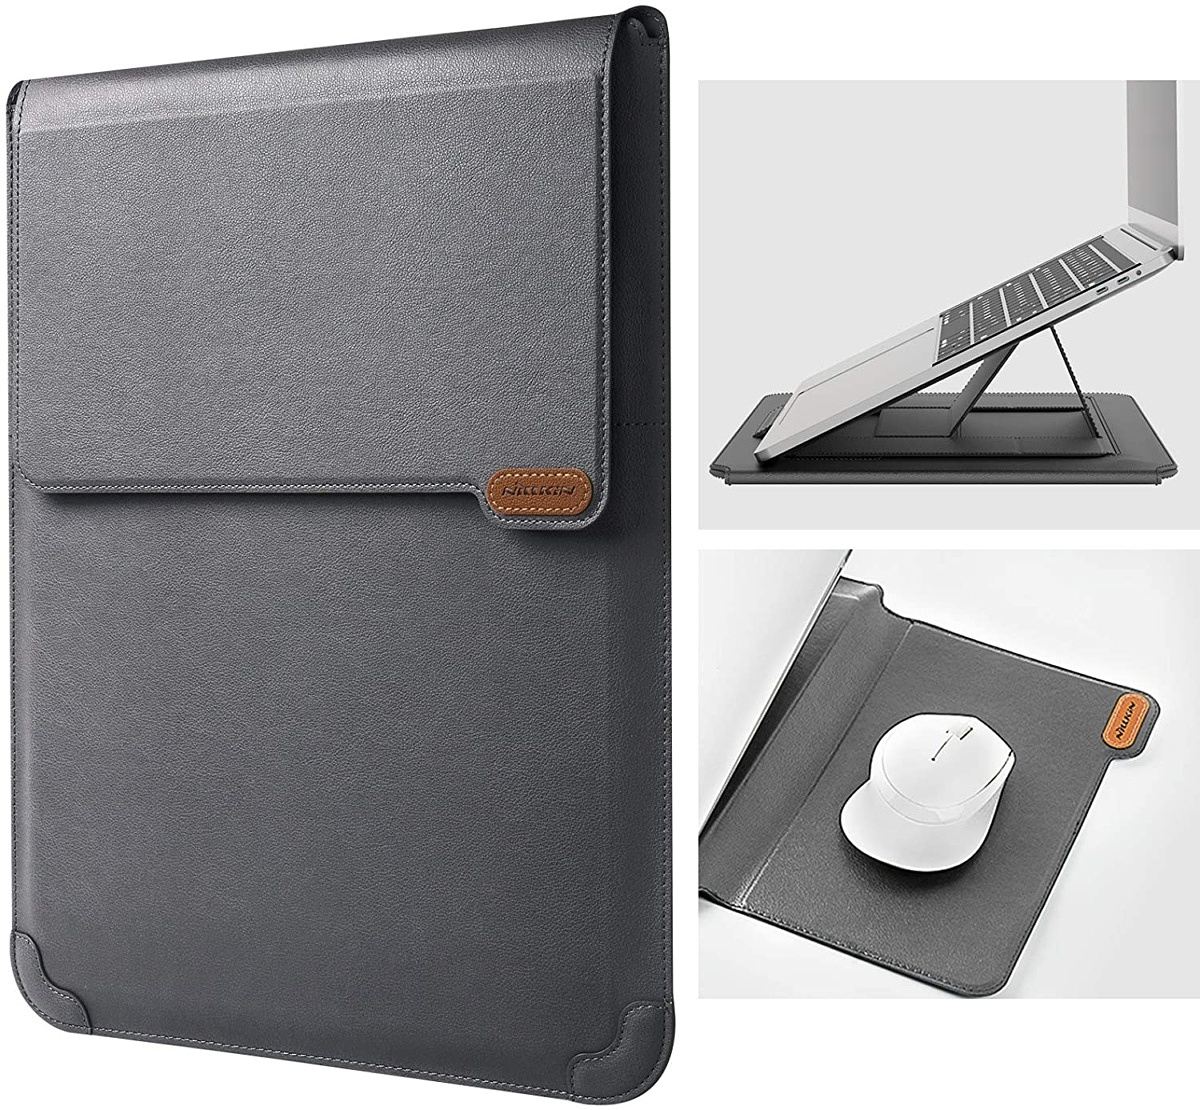 Nillkin laptop sleeve with stand